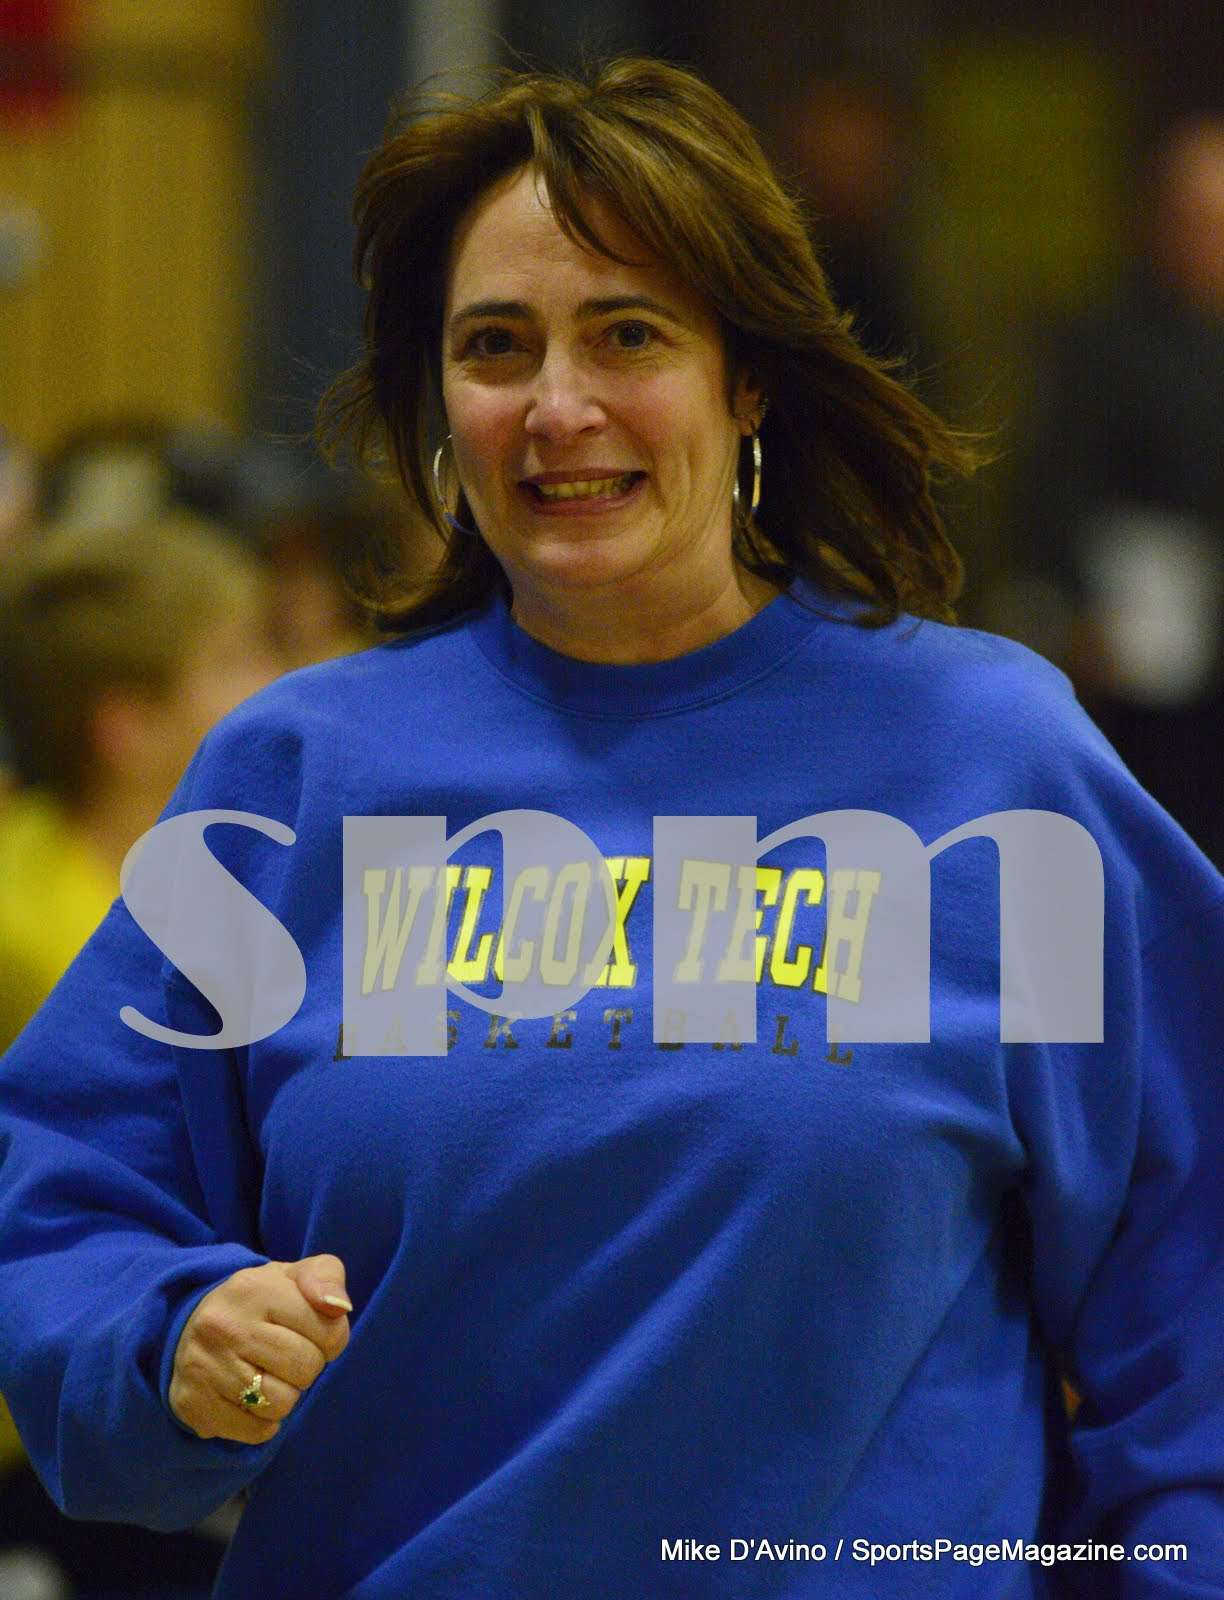 haddam cougar women For the haddam-killingworth cougars girls basketball team on maxpreps   the most current information will appear at the top of the wall dating back to prior .